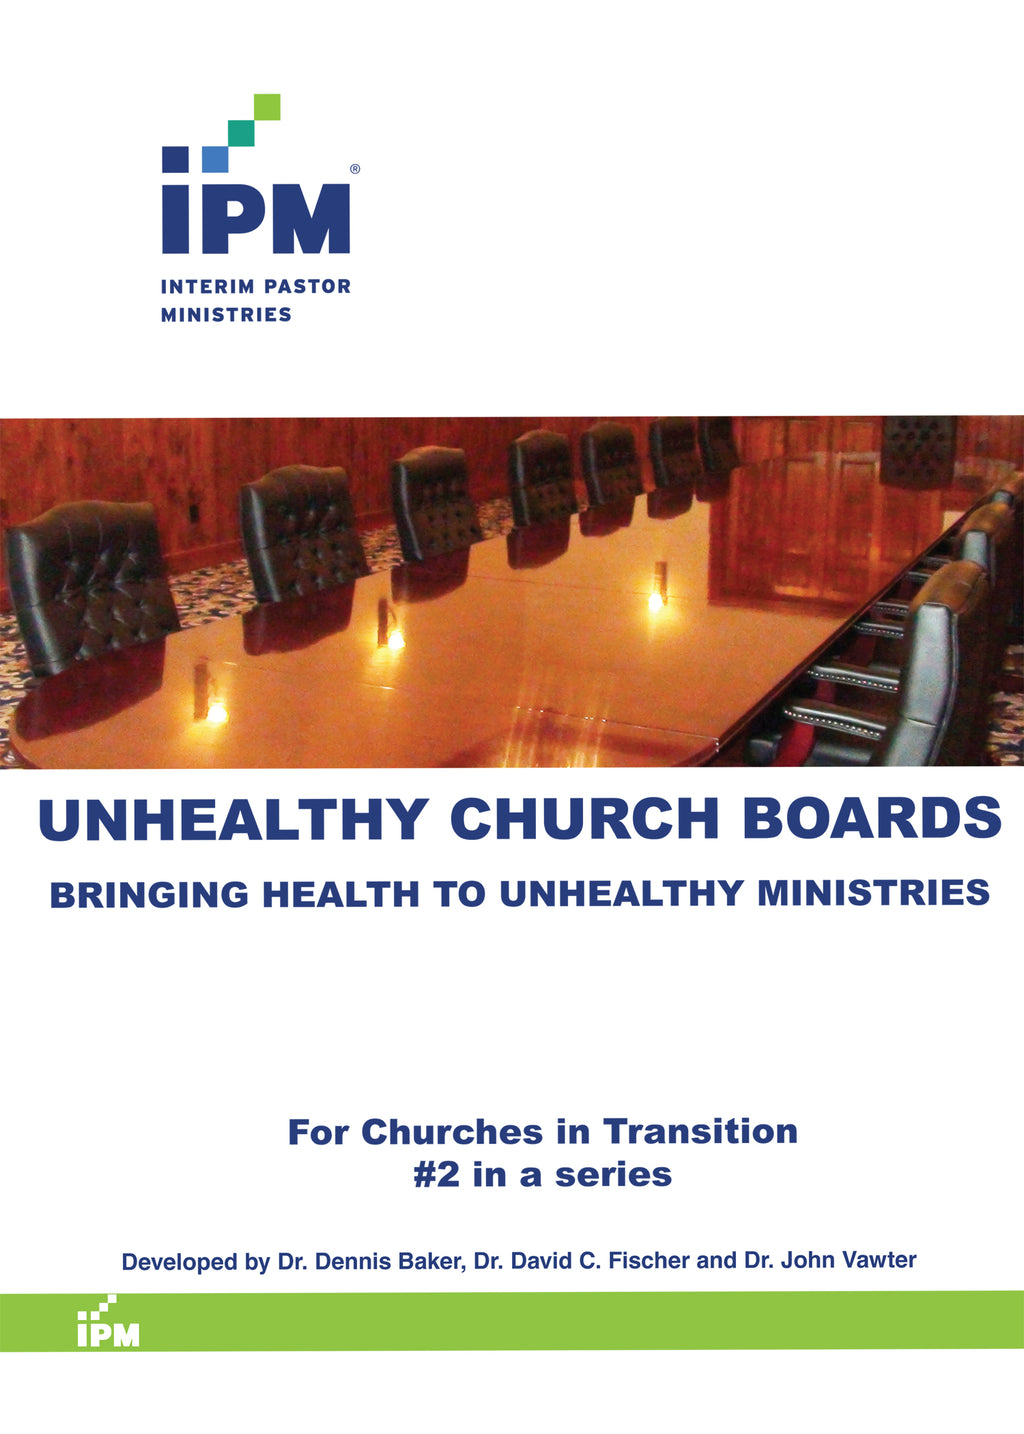 Unhealthy Church Boards - UCB